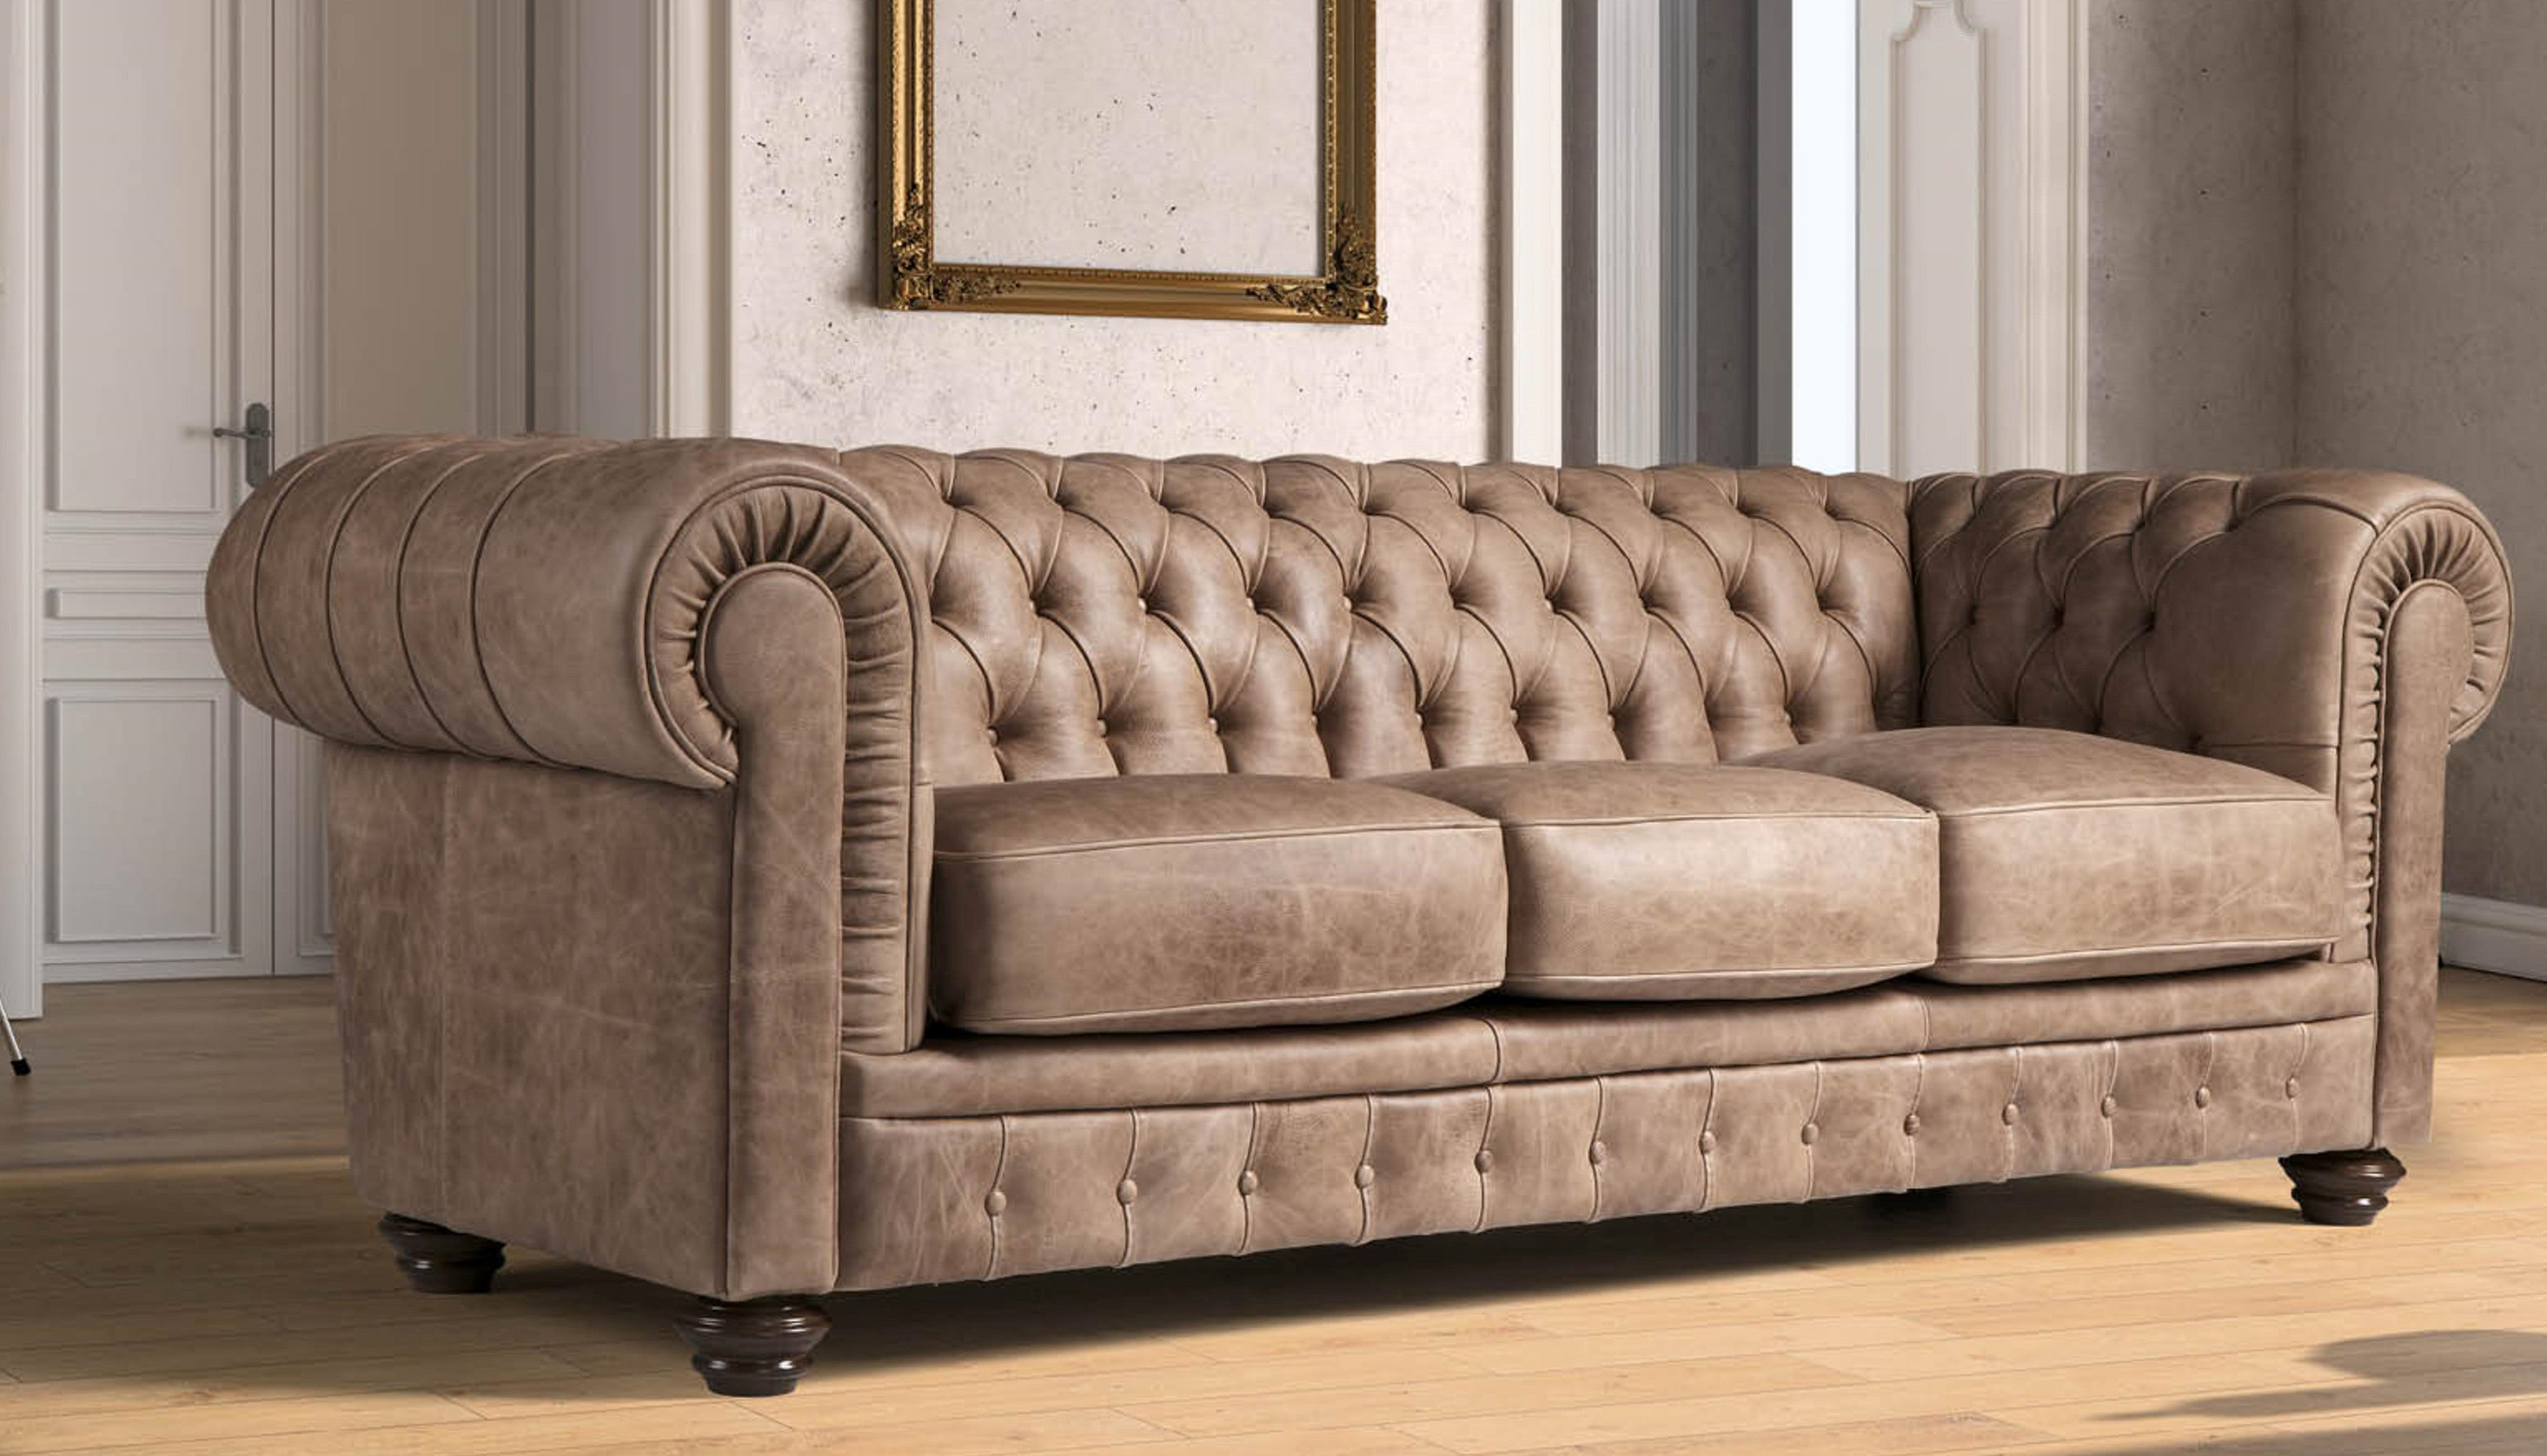 Leather Furniture In Castleford